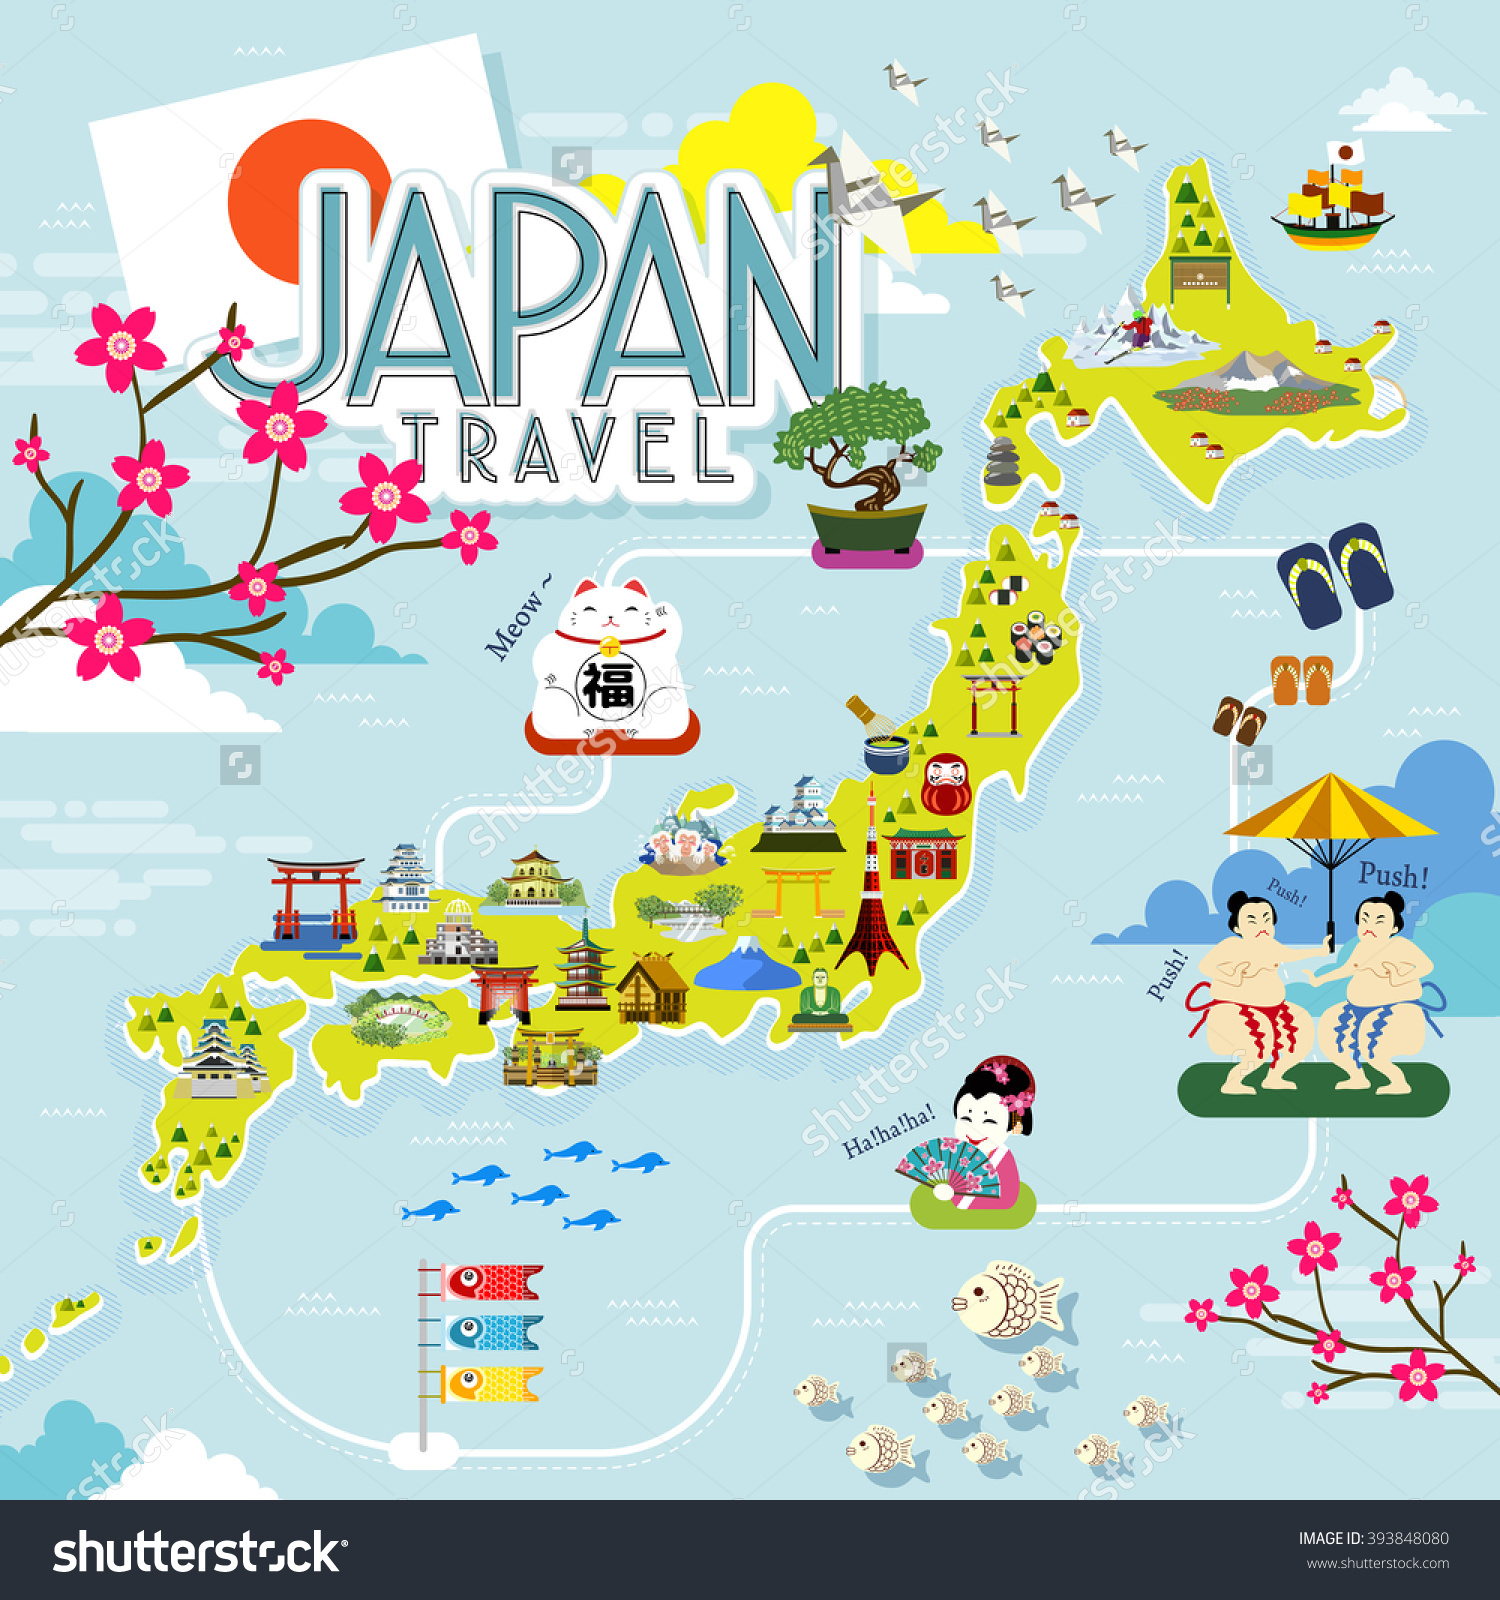 Japan Travel Map Lovely Famous Attractions Illustration – Japan Tourist Map